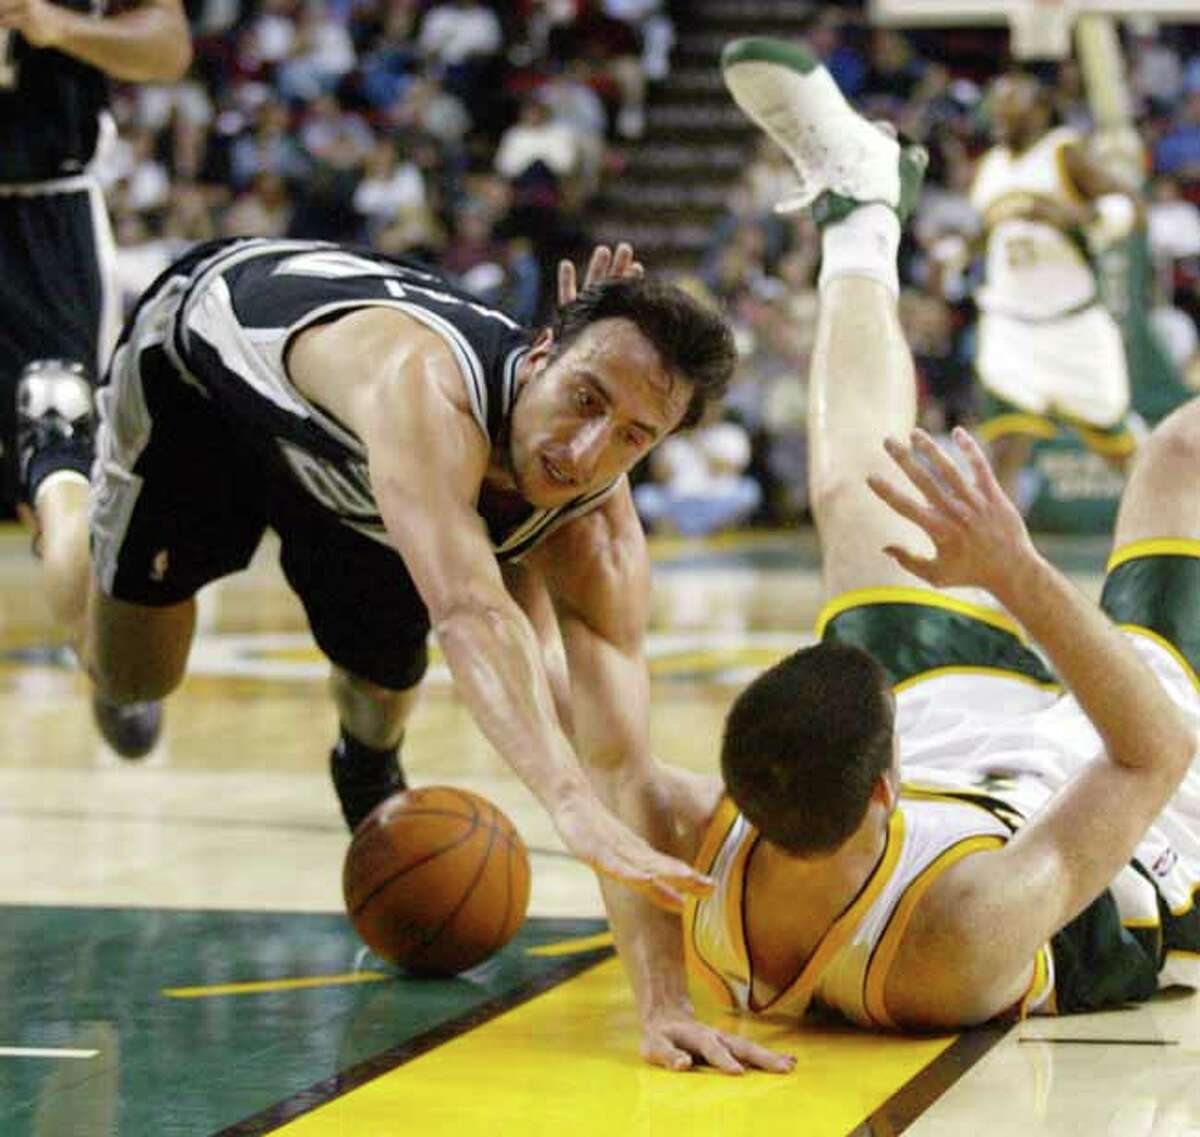 Sometimes it seems like the Spurs' Manu Ginobili is hurt more than he's healthy. Here's a look back at some of his more memorable injuries. The Spurs' Manu Ginobili falls to the court during the first quarter against the Seattle SuperSonics in Seattle on Nov. 7, 2004.